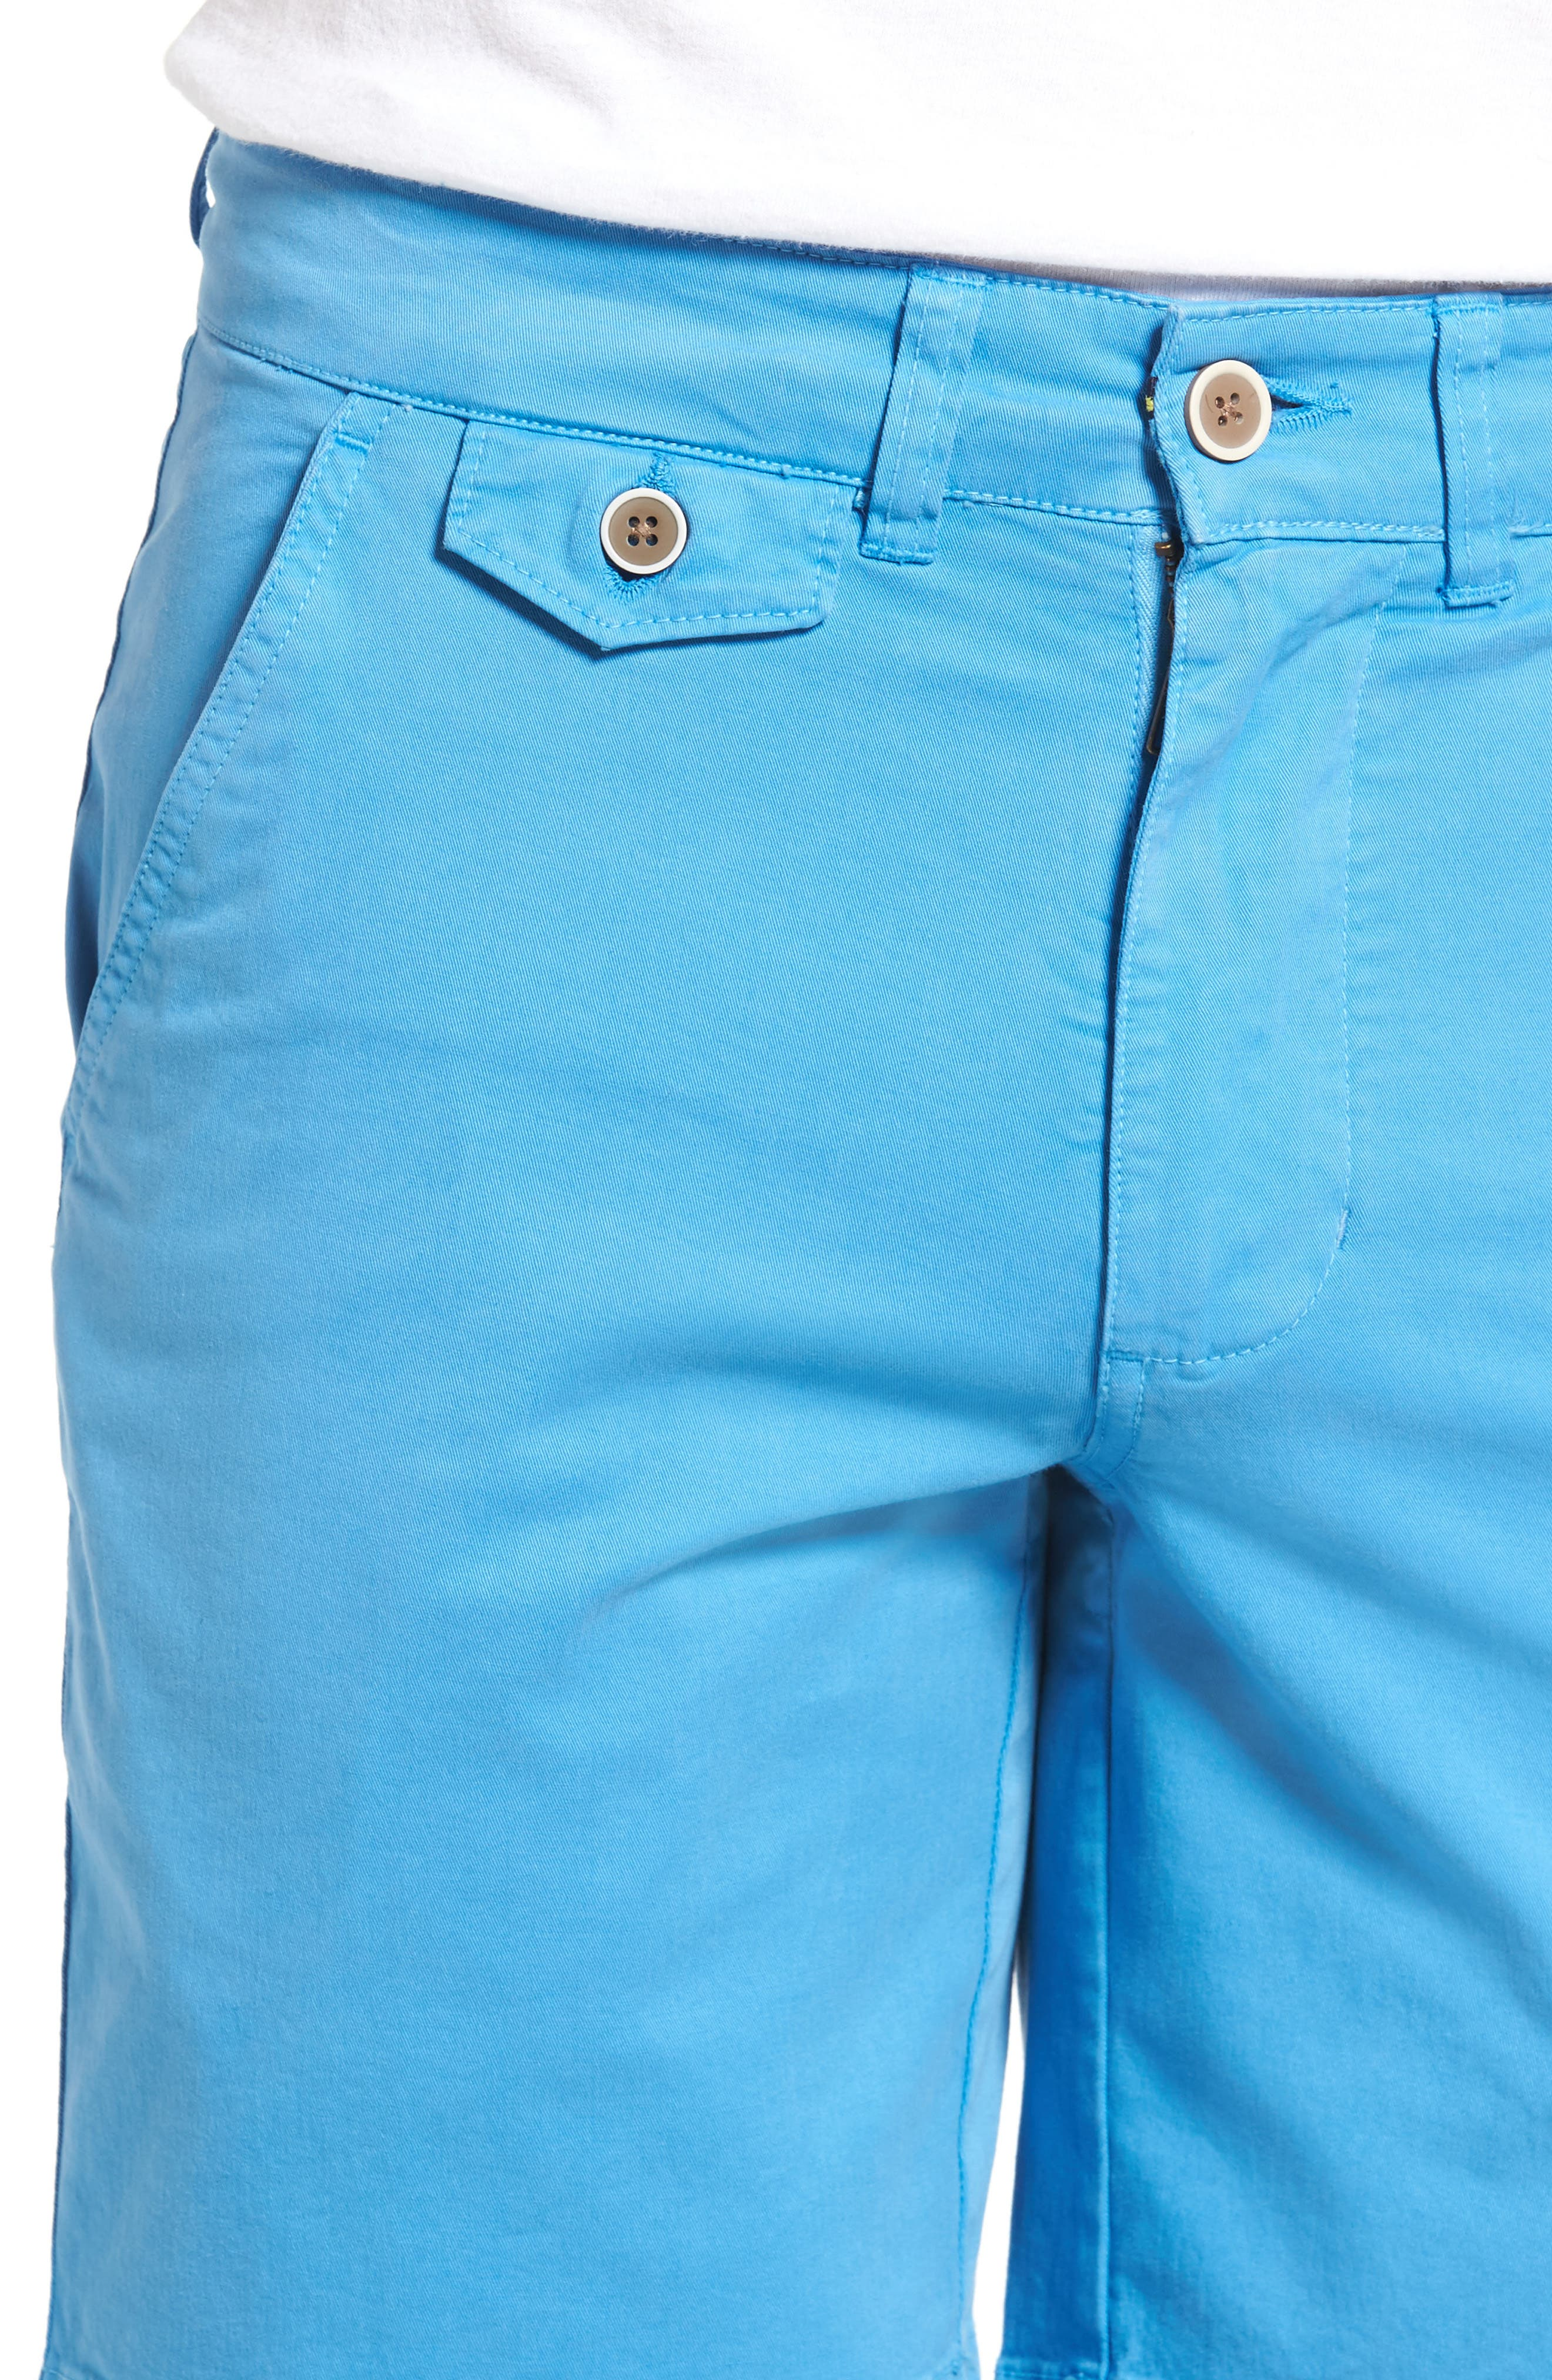 'Sunny' Stretch Chino Shorts,                             Alternate thumbnail 22, color,